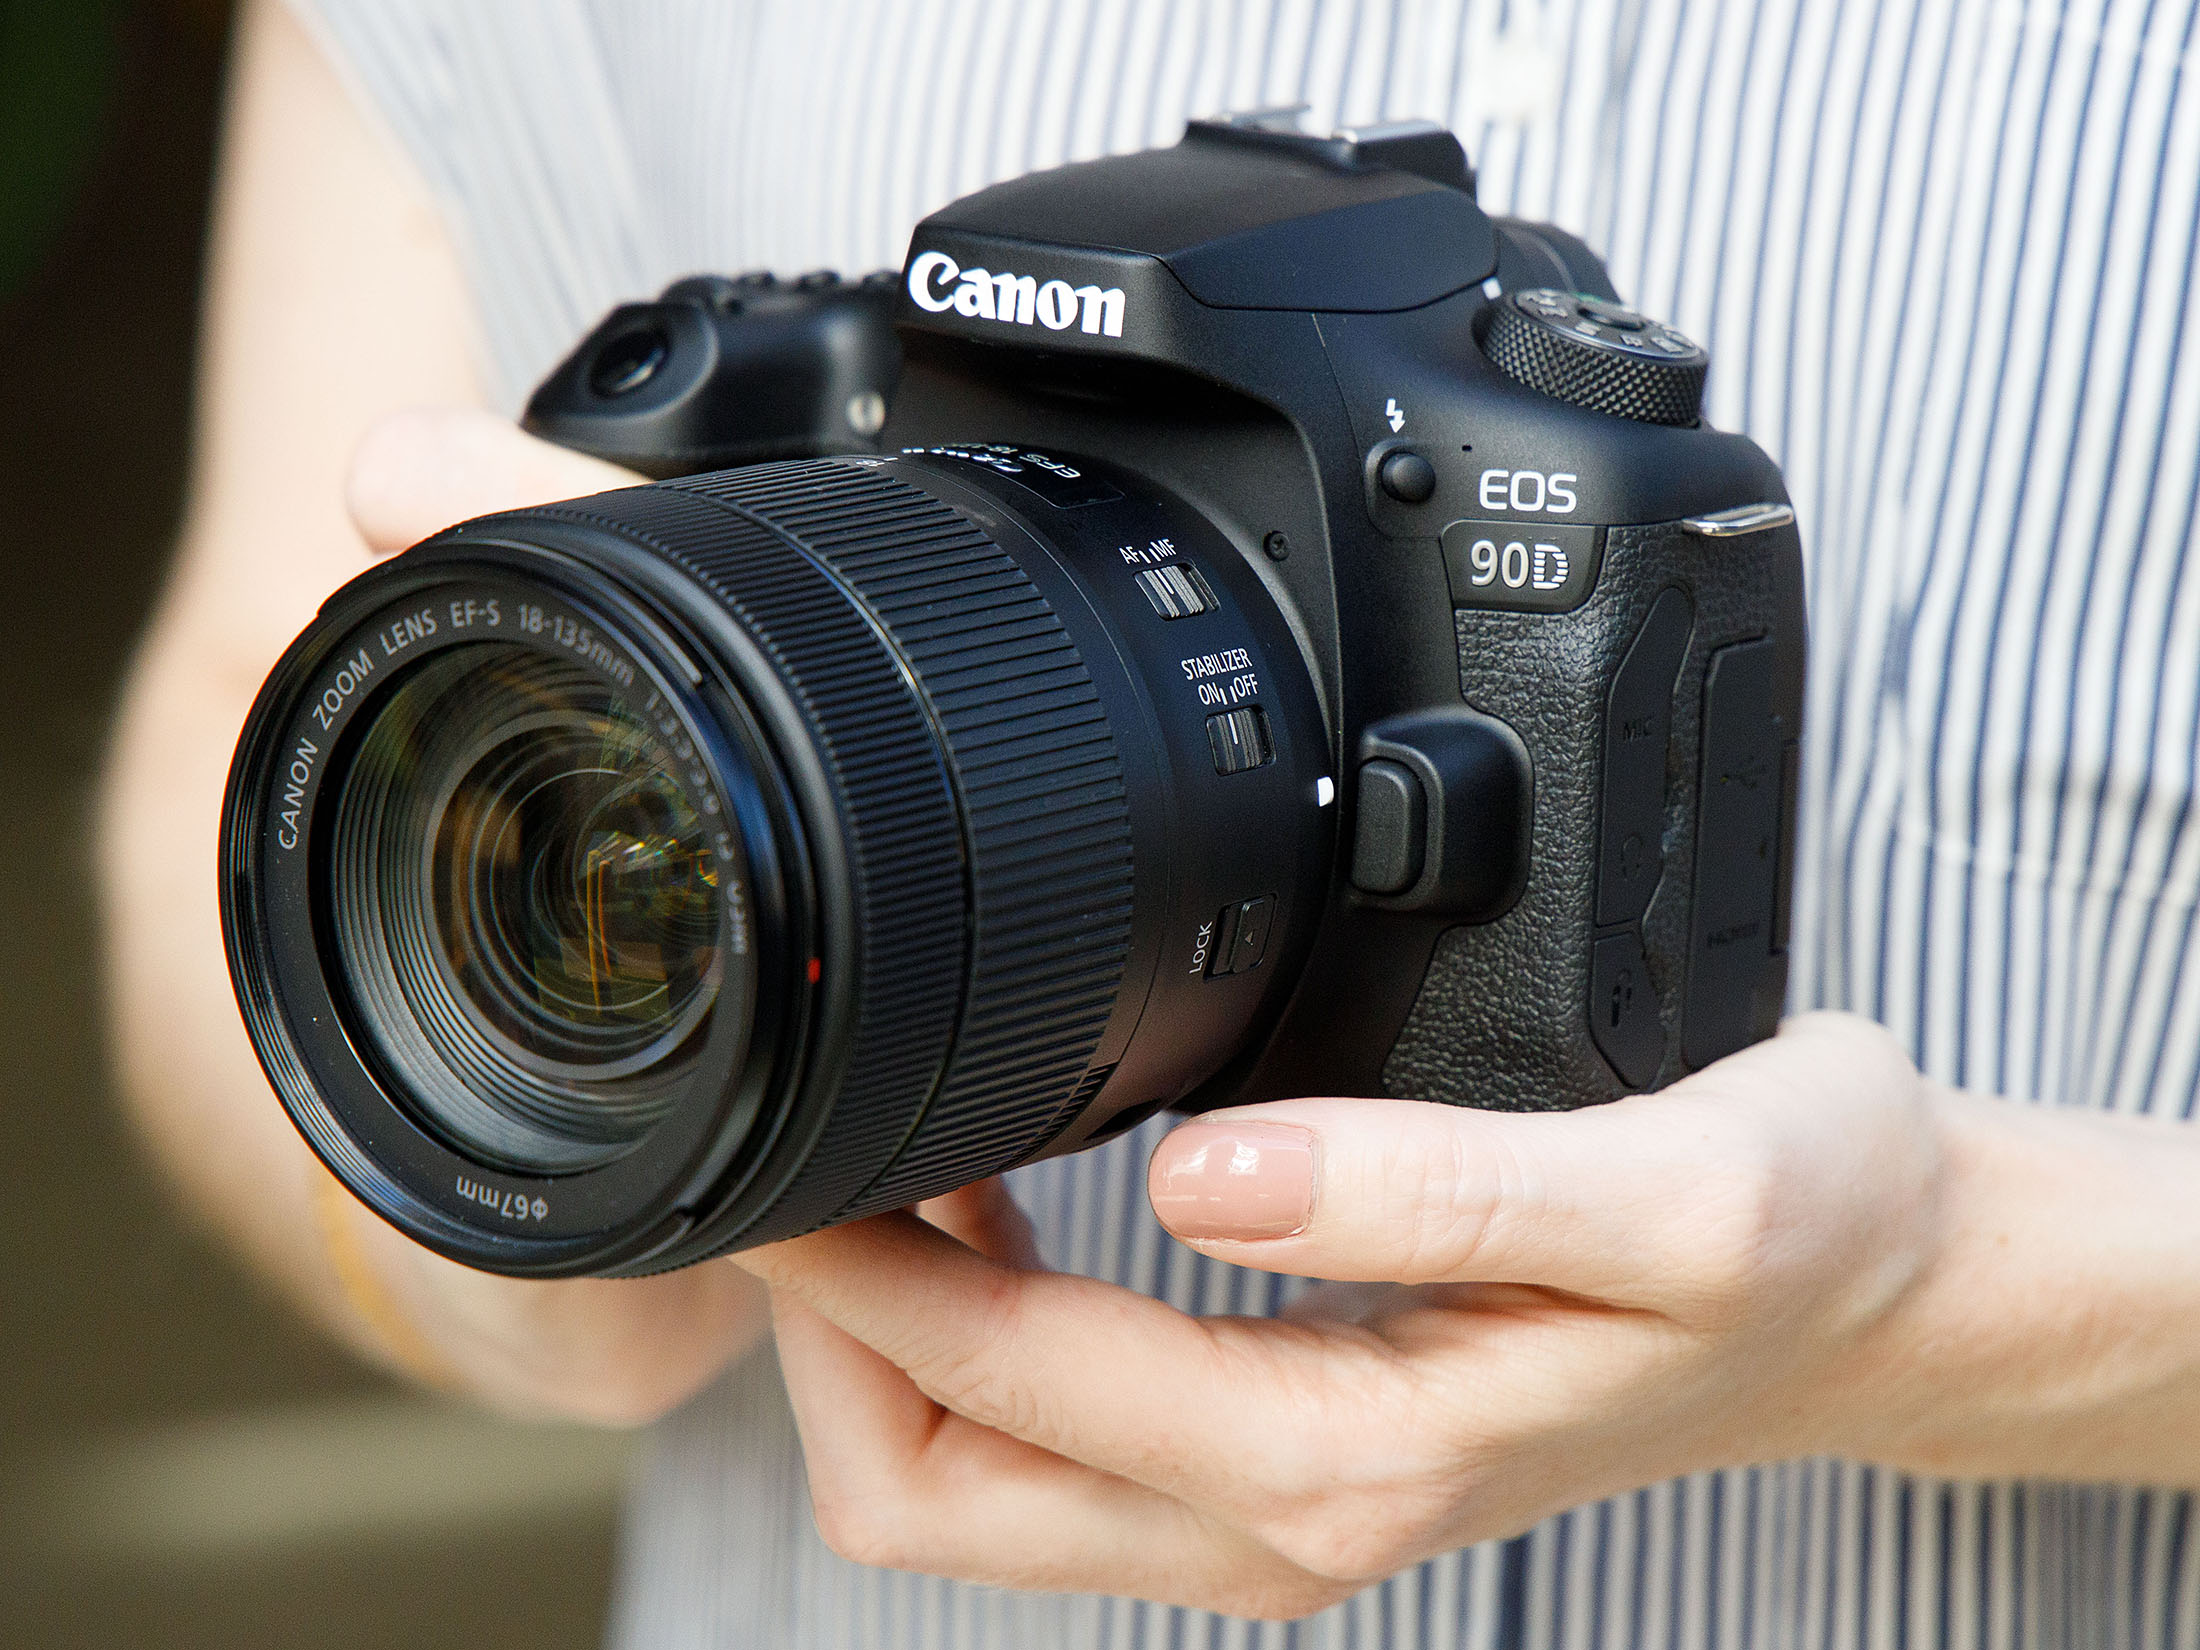 Hands-on with the Canon EOS 90D: Digital Photography Review